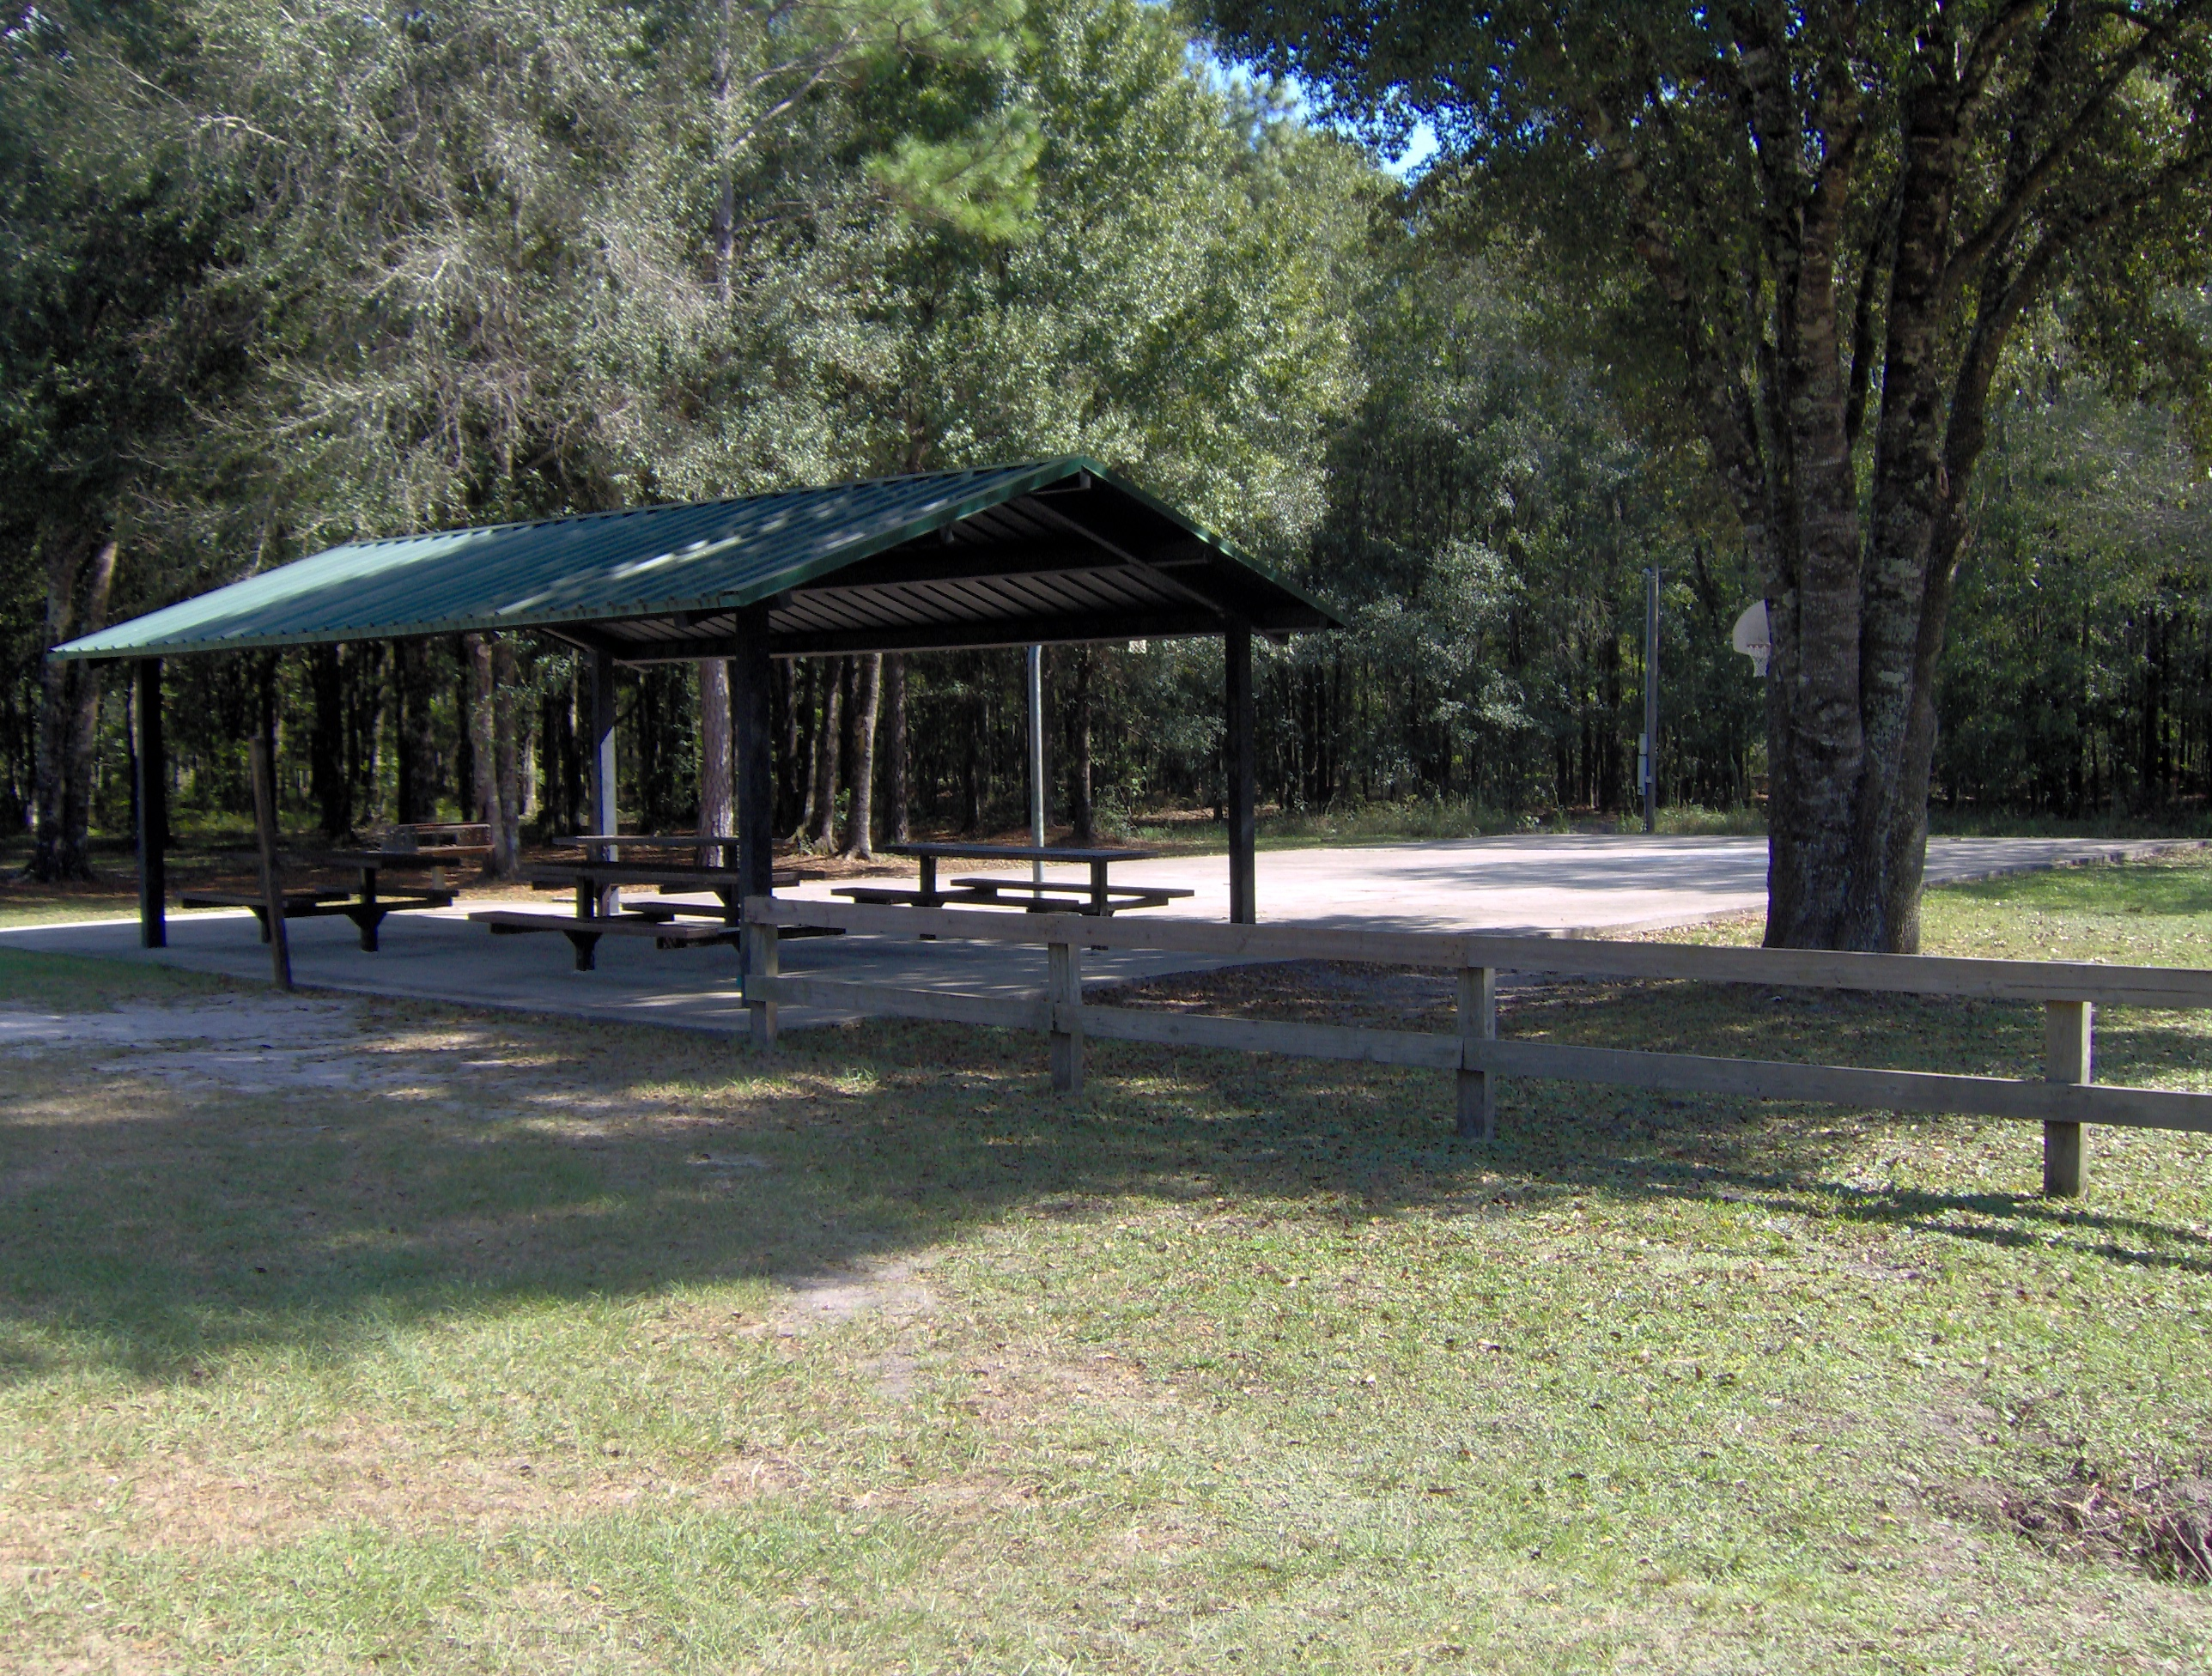 A green awning over some picnic benches by a basketball court surrounded by trees